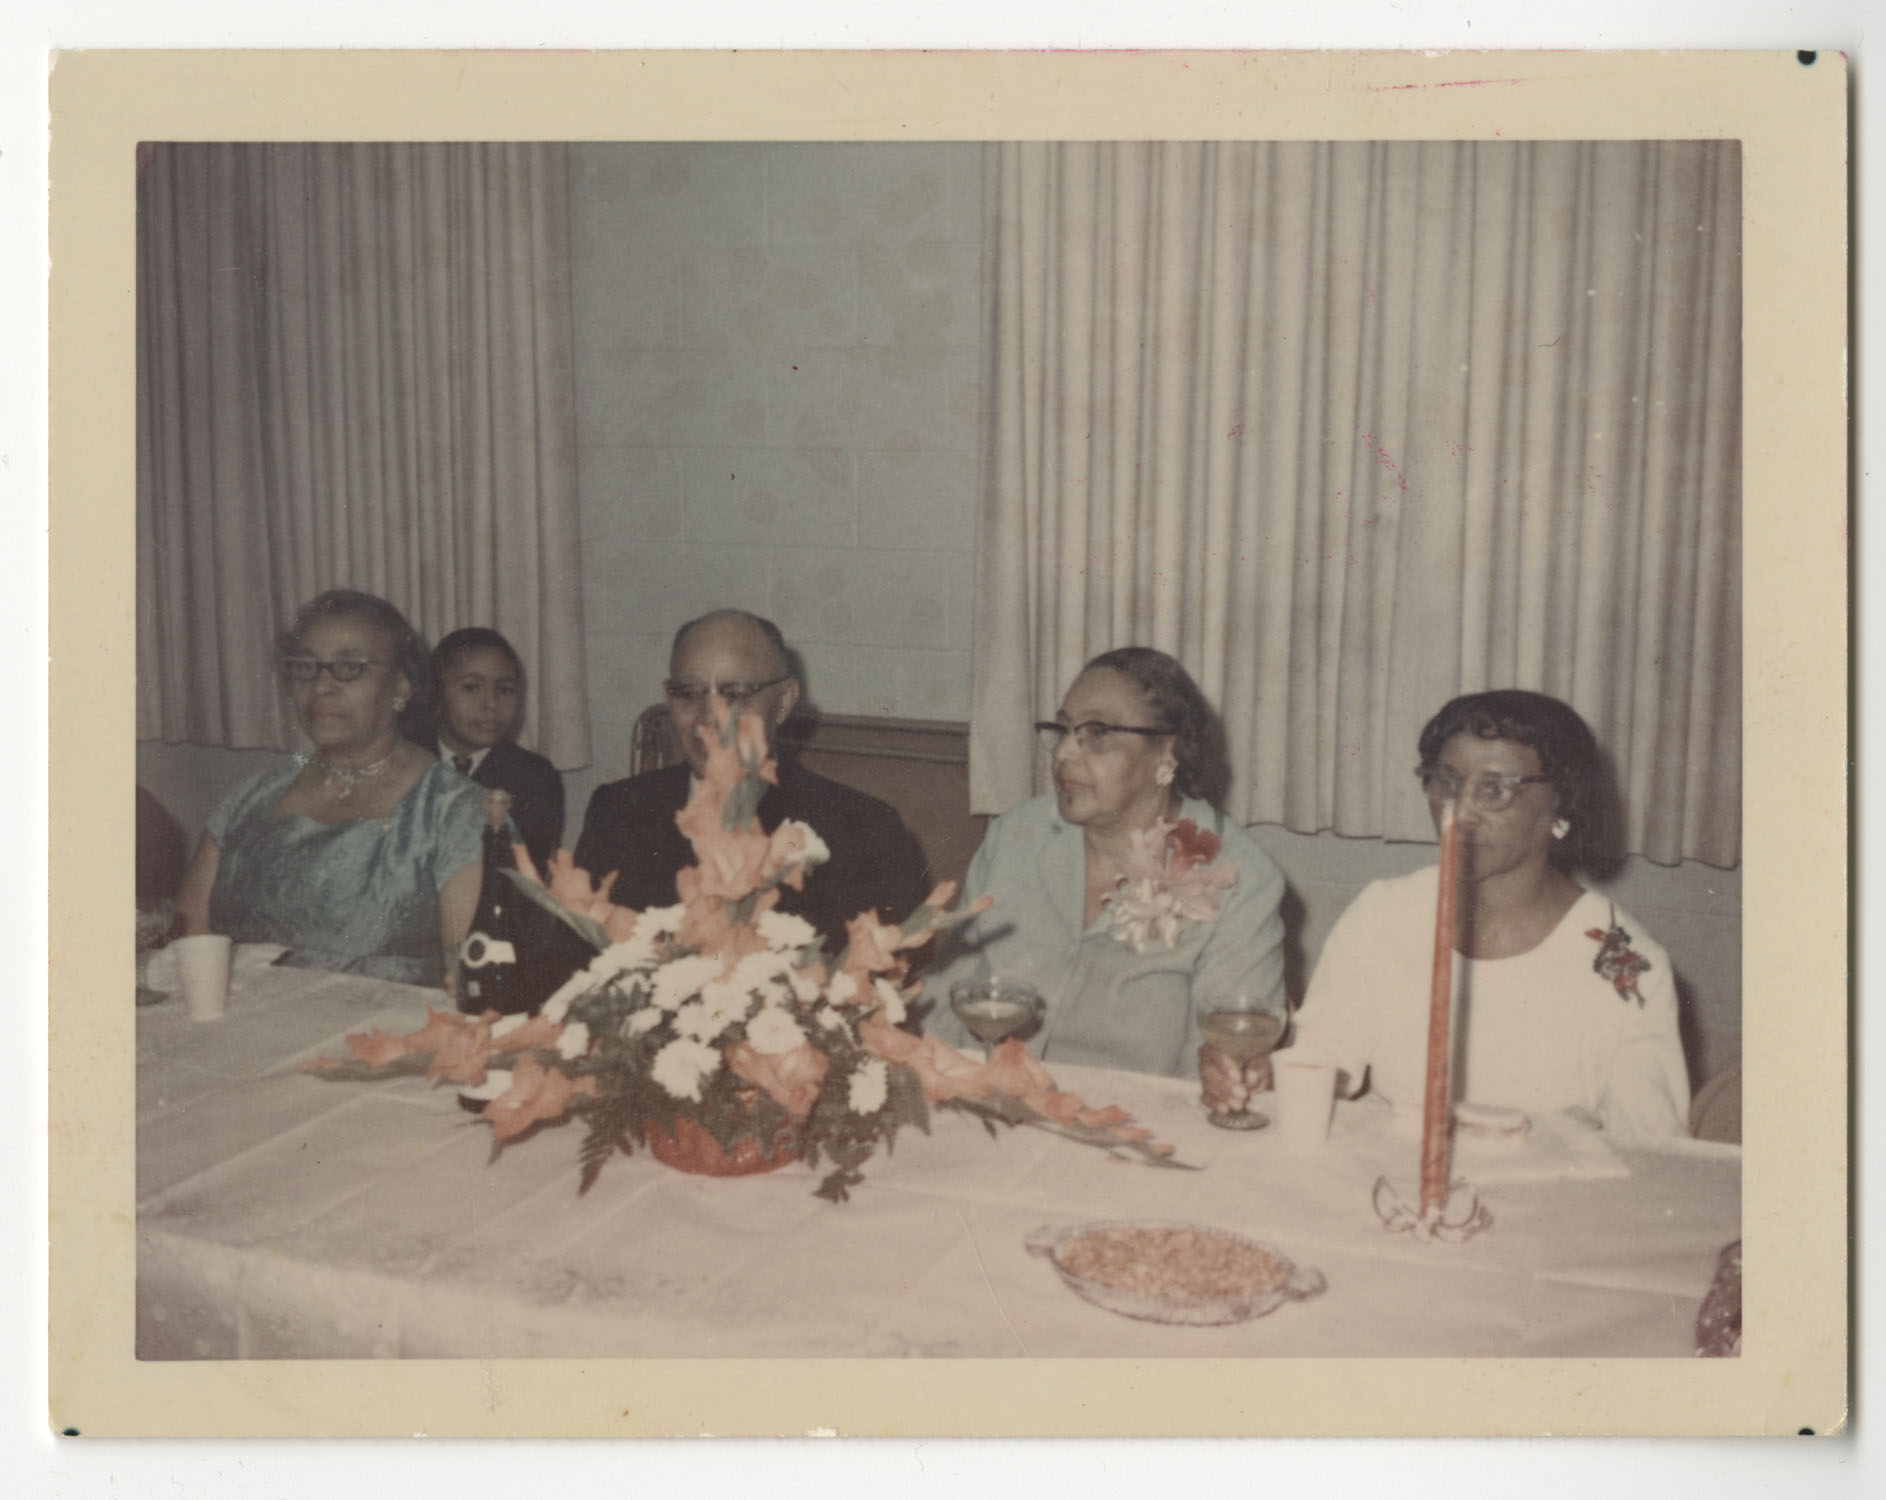 Septima P. Clark, Christmas Party, 1965